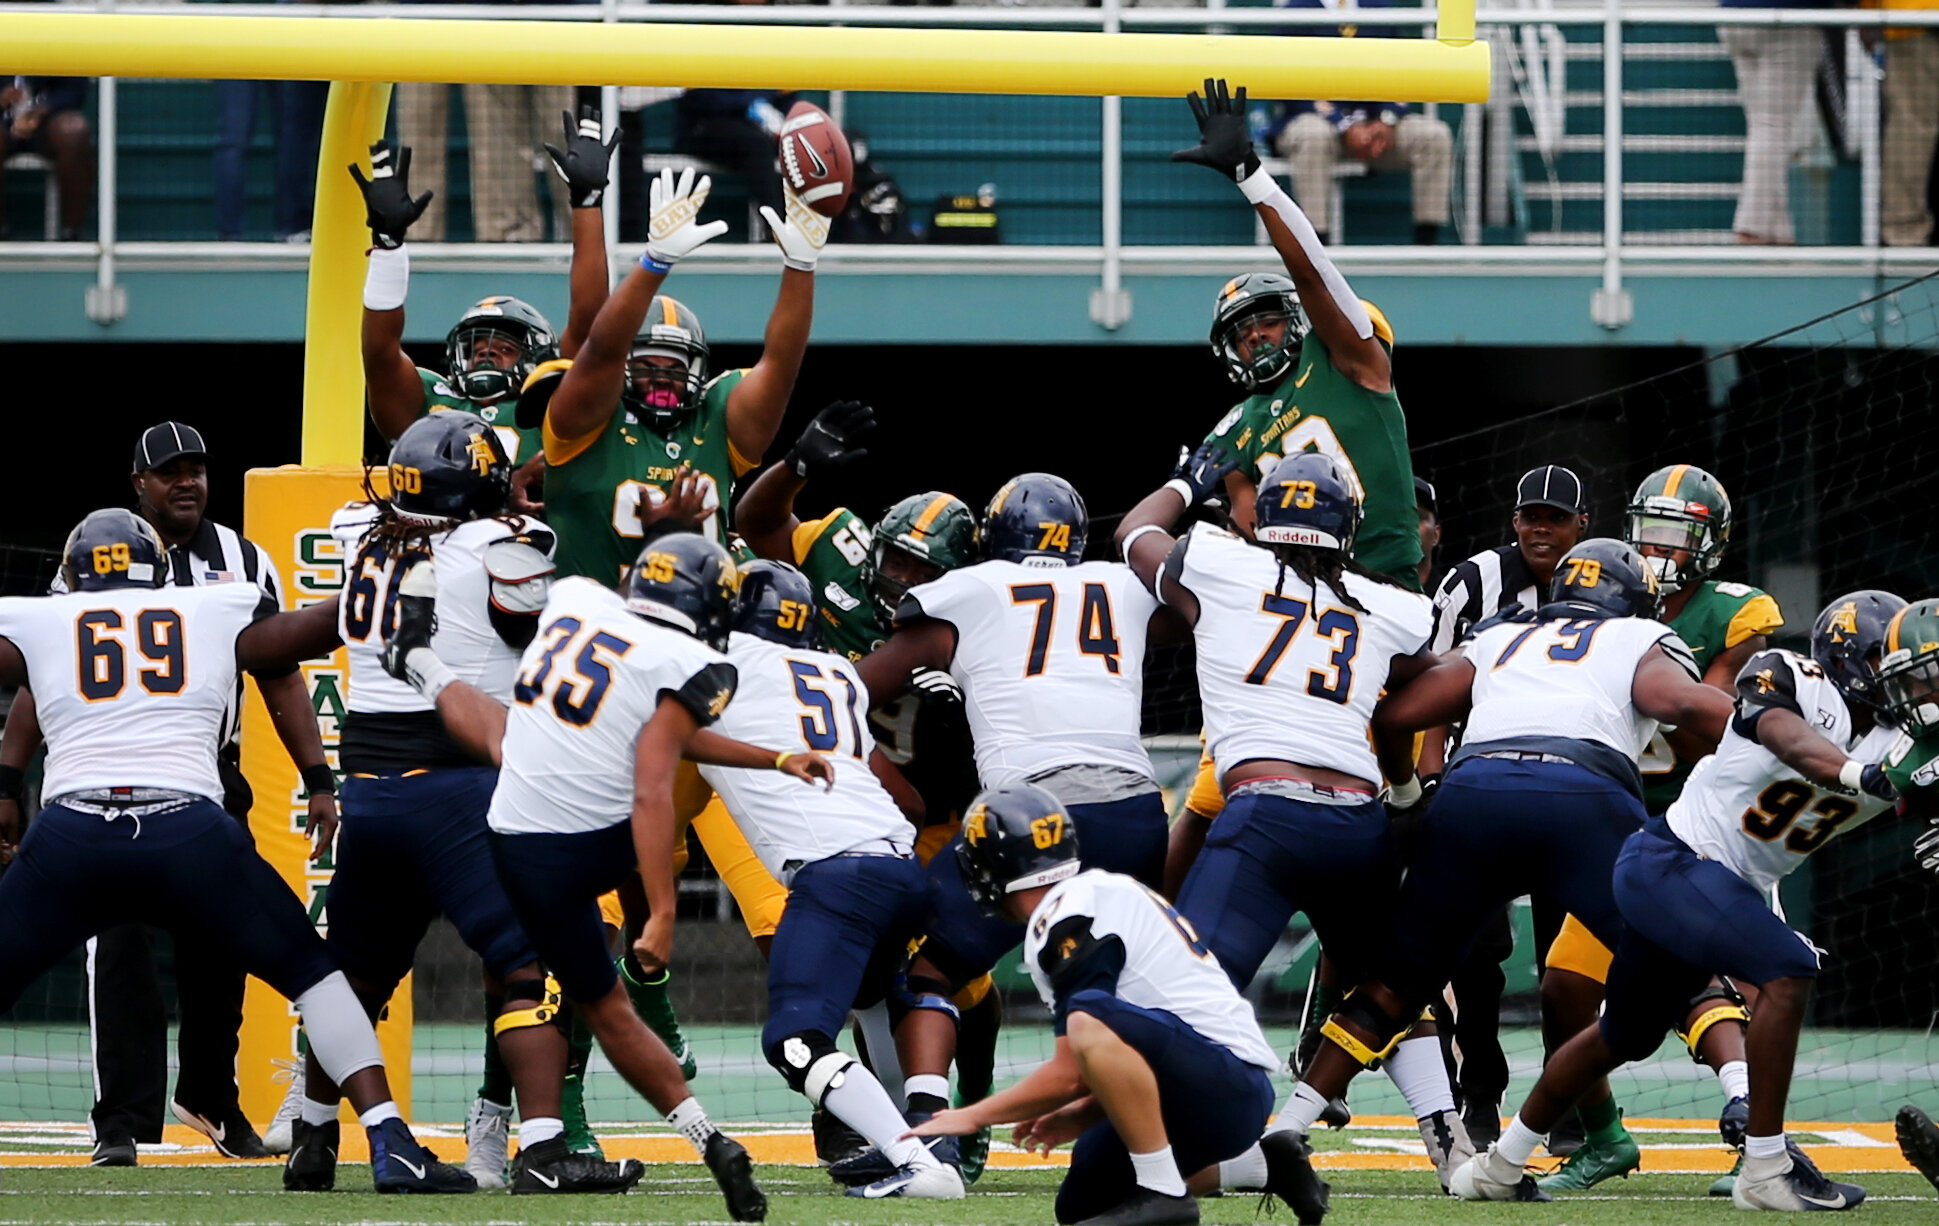 The Norfolk State defense blocks an extra-point attempt during the Spartans' 59-18 loss to North Carolina A&T, Saturday, October 5, 2019 at Dick Price Stadium in Norfolk.